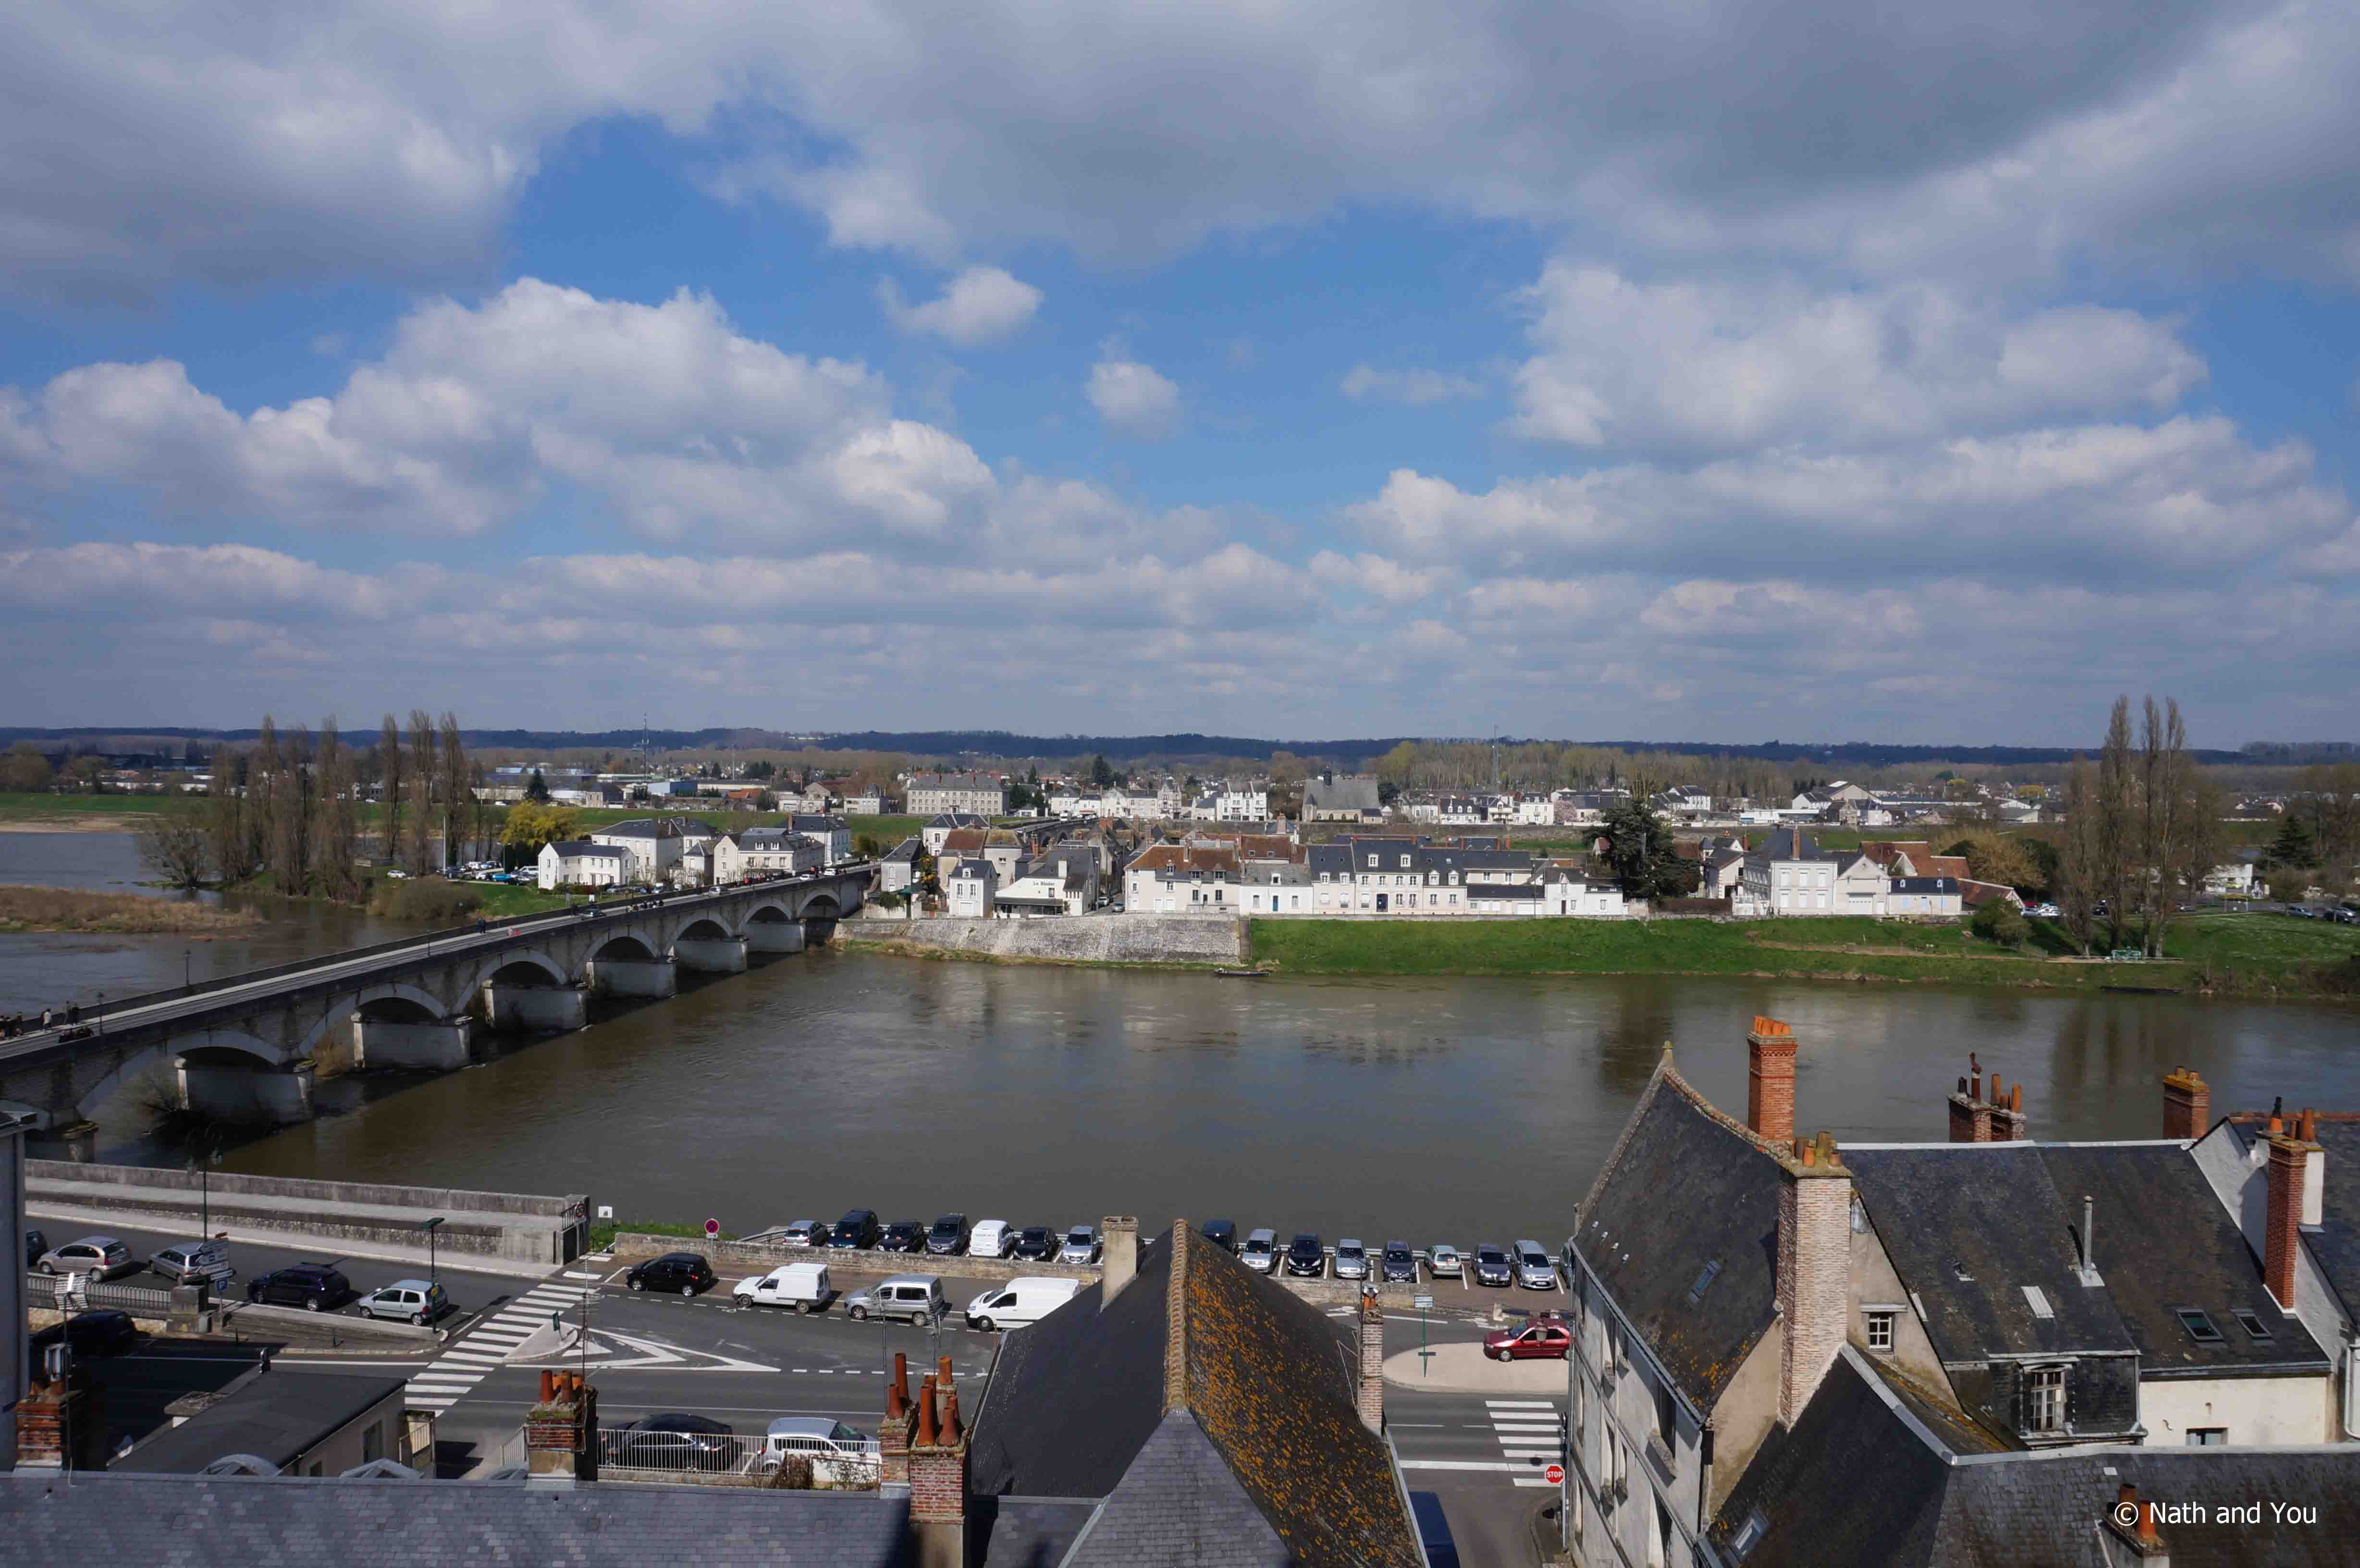 amboise-4-chateaux-loire-Nath-and-you